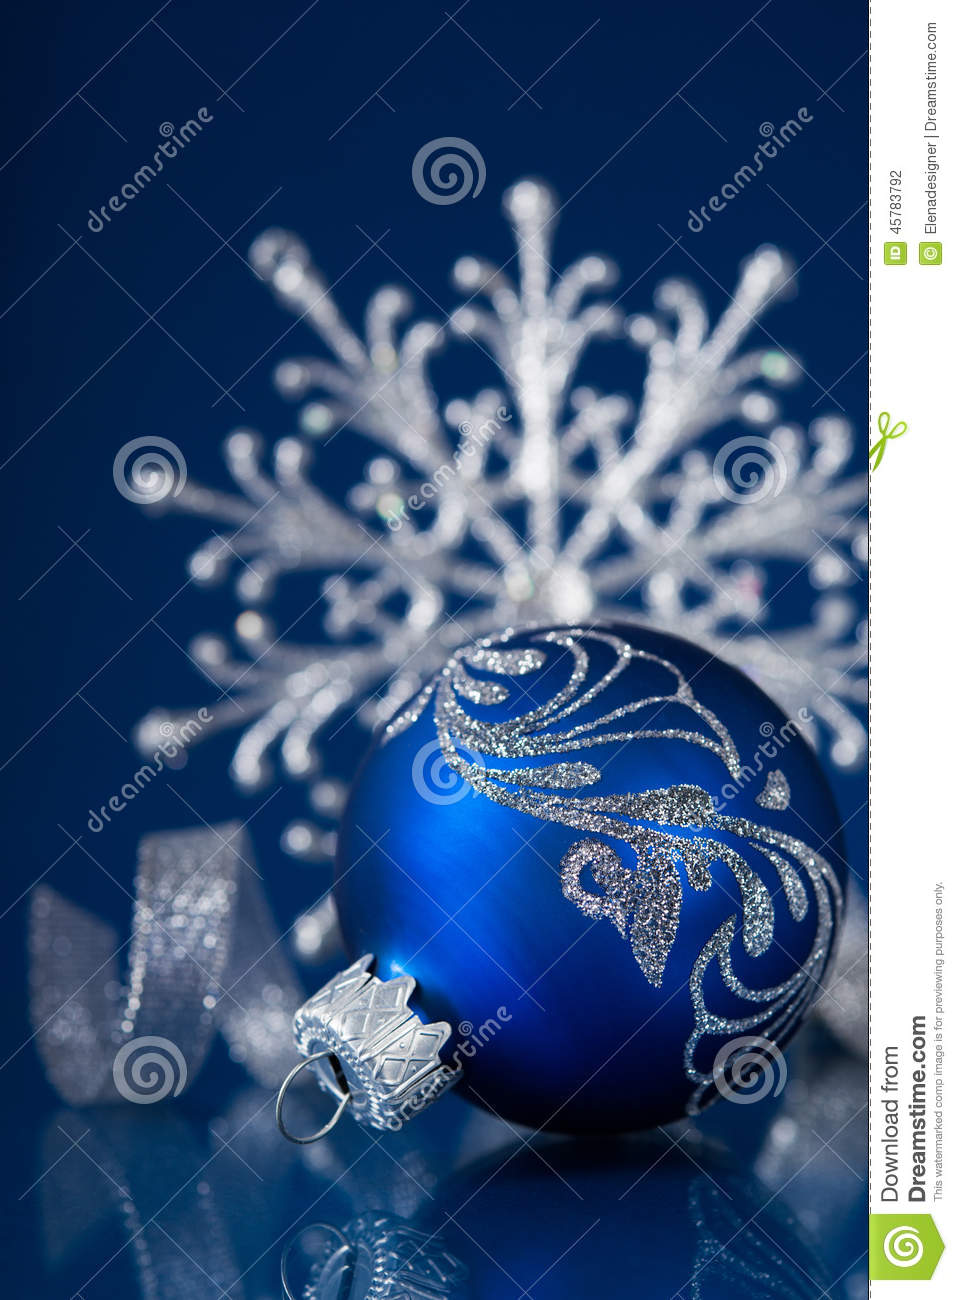 blue and silver christmas ornaments on dark blue xmas background with space for text